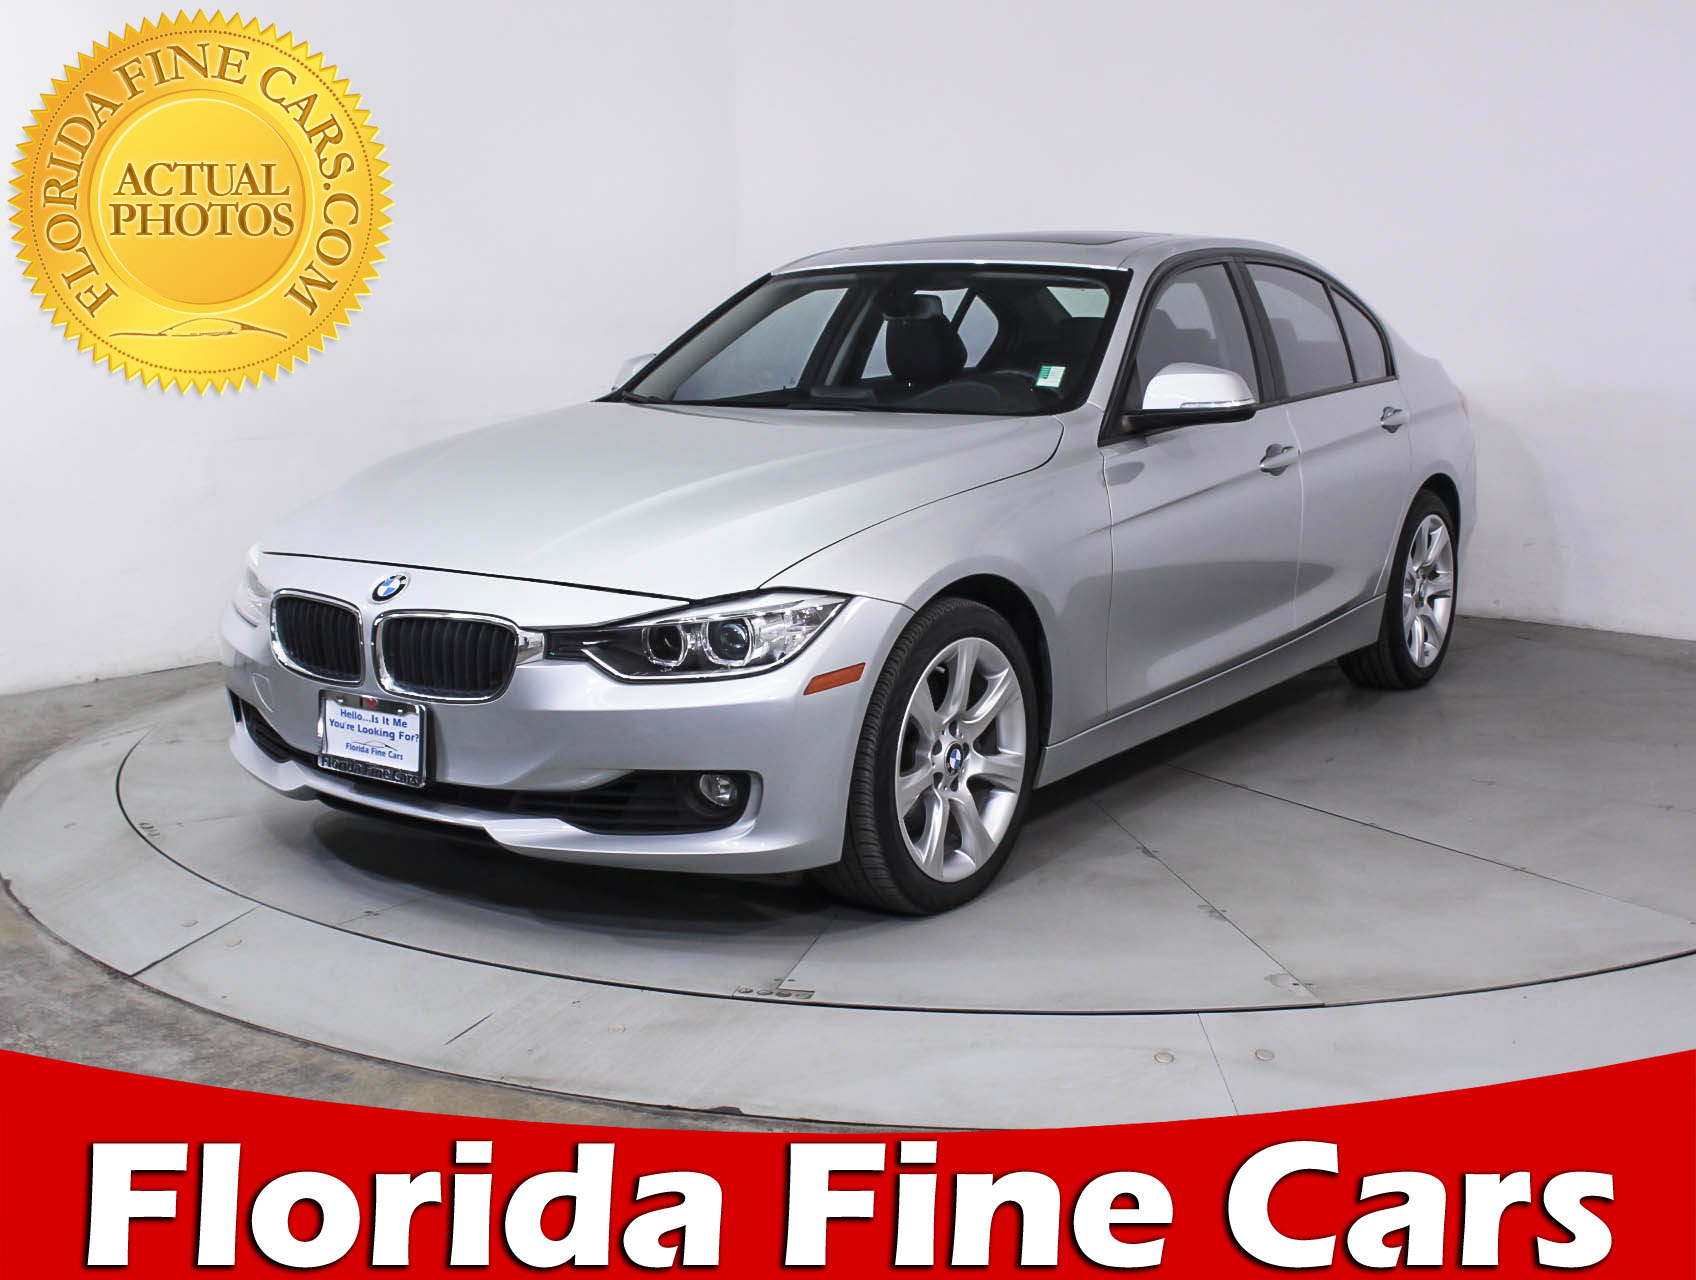 Used BMW 3 SERIES 2013 WEST PALM 335I XDRIVE